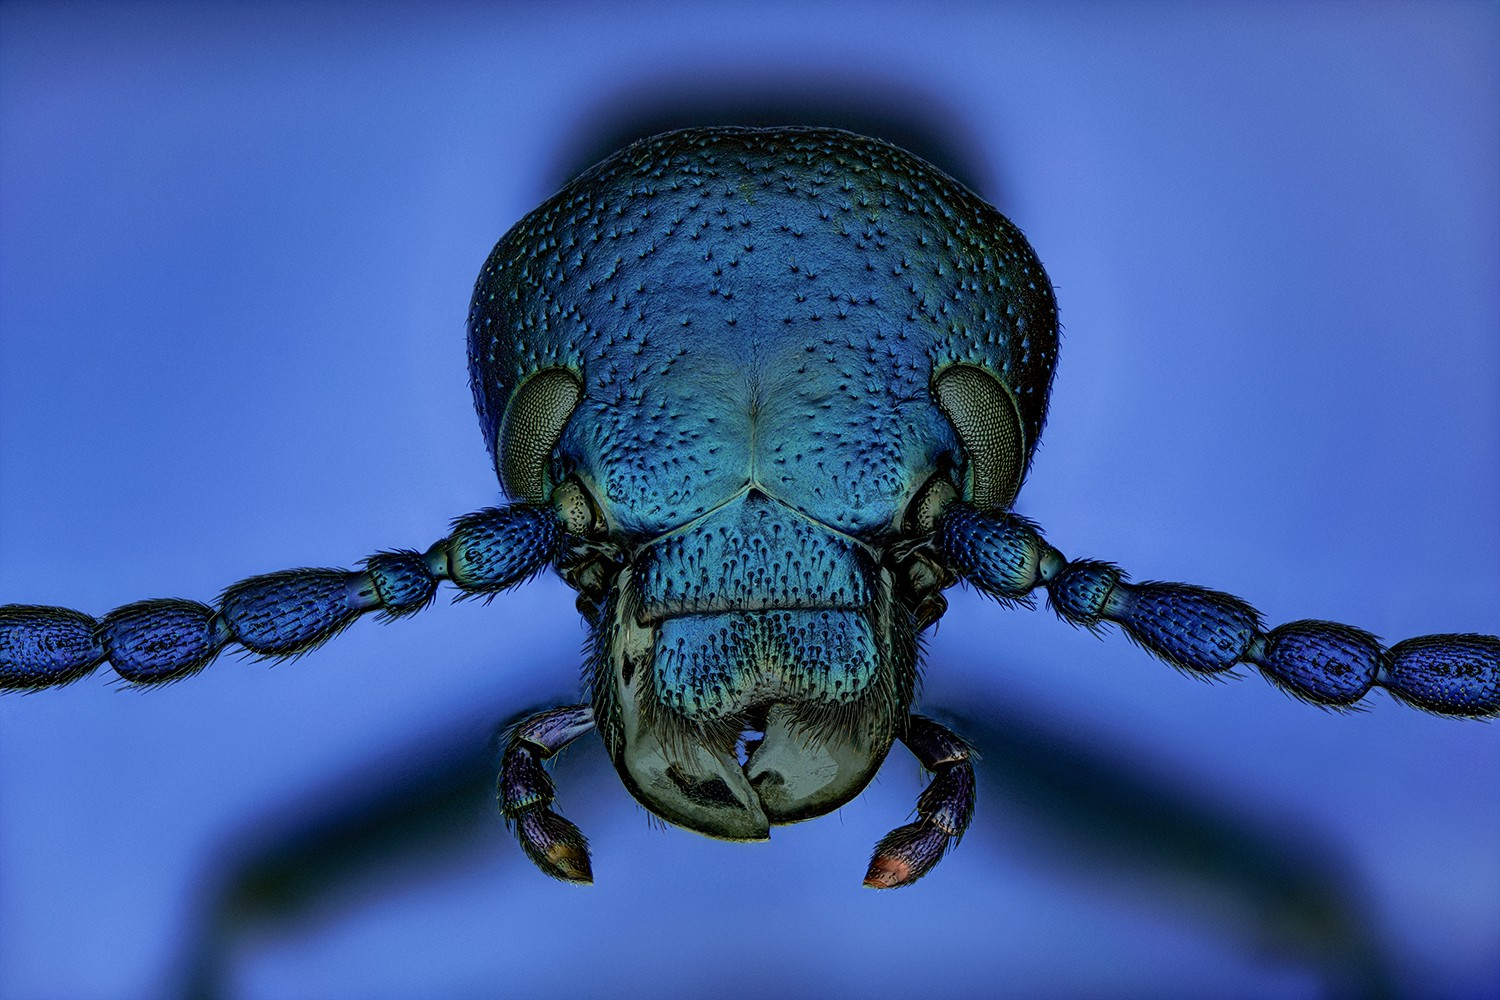 A close up photo of a beetle in rich, iridescent blue and green jewel tones, with small claws and segmented limbs